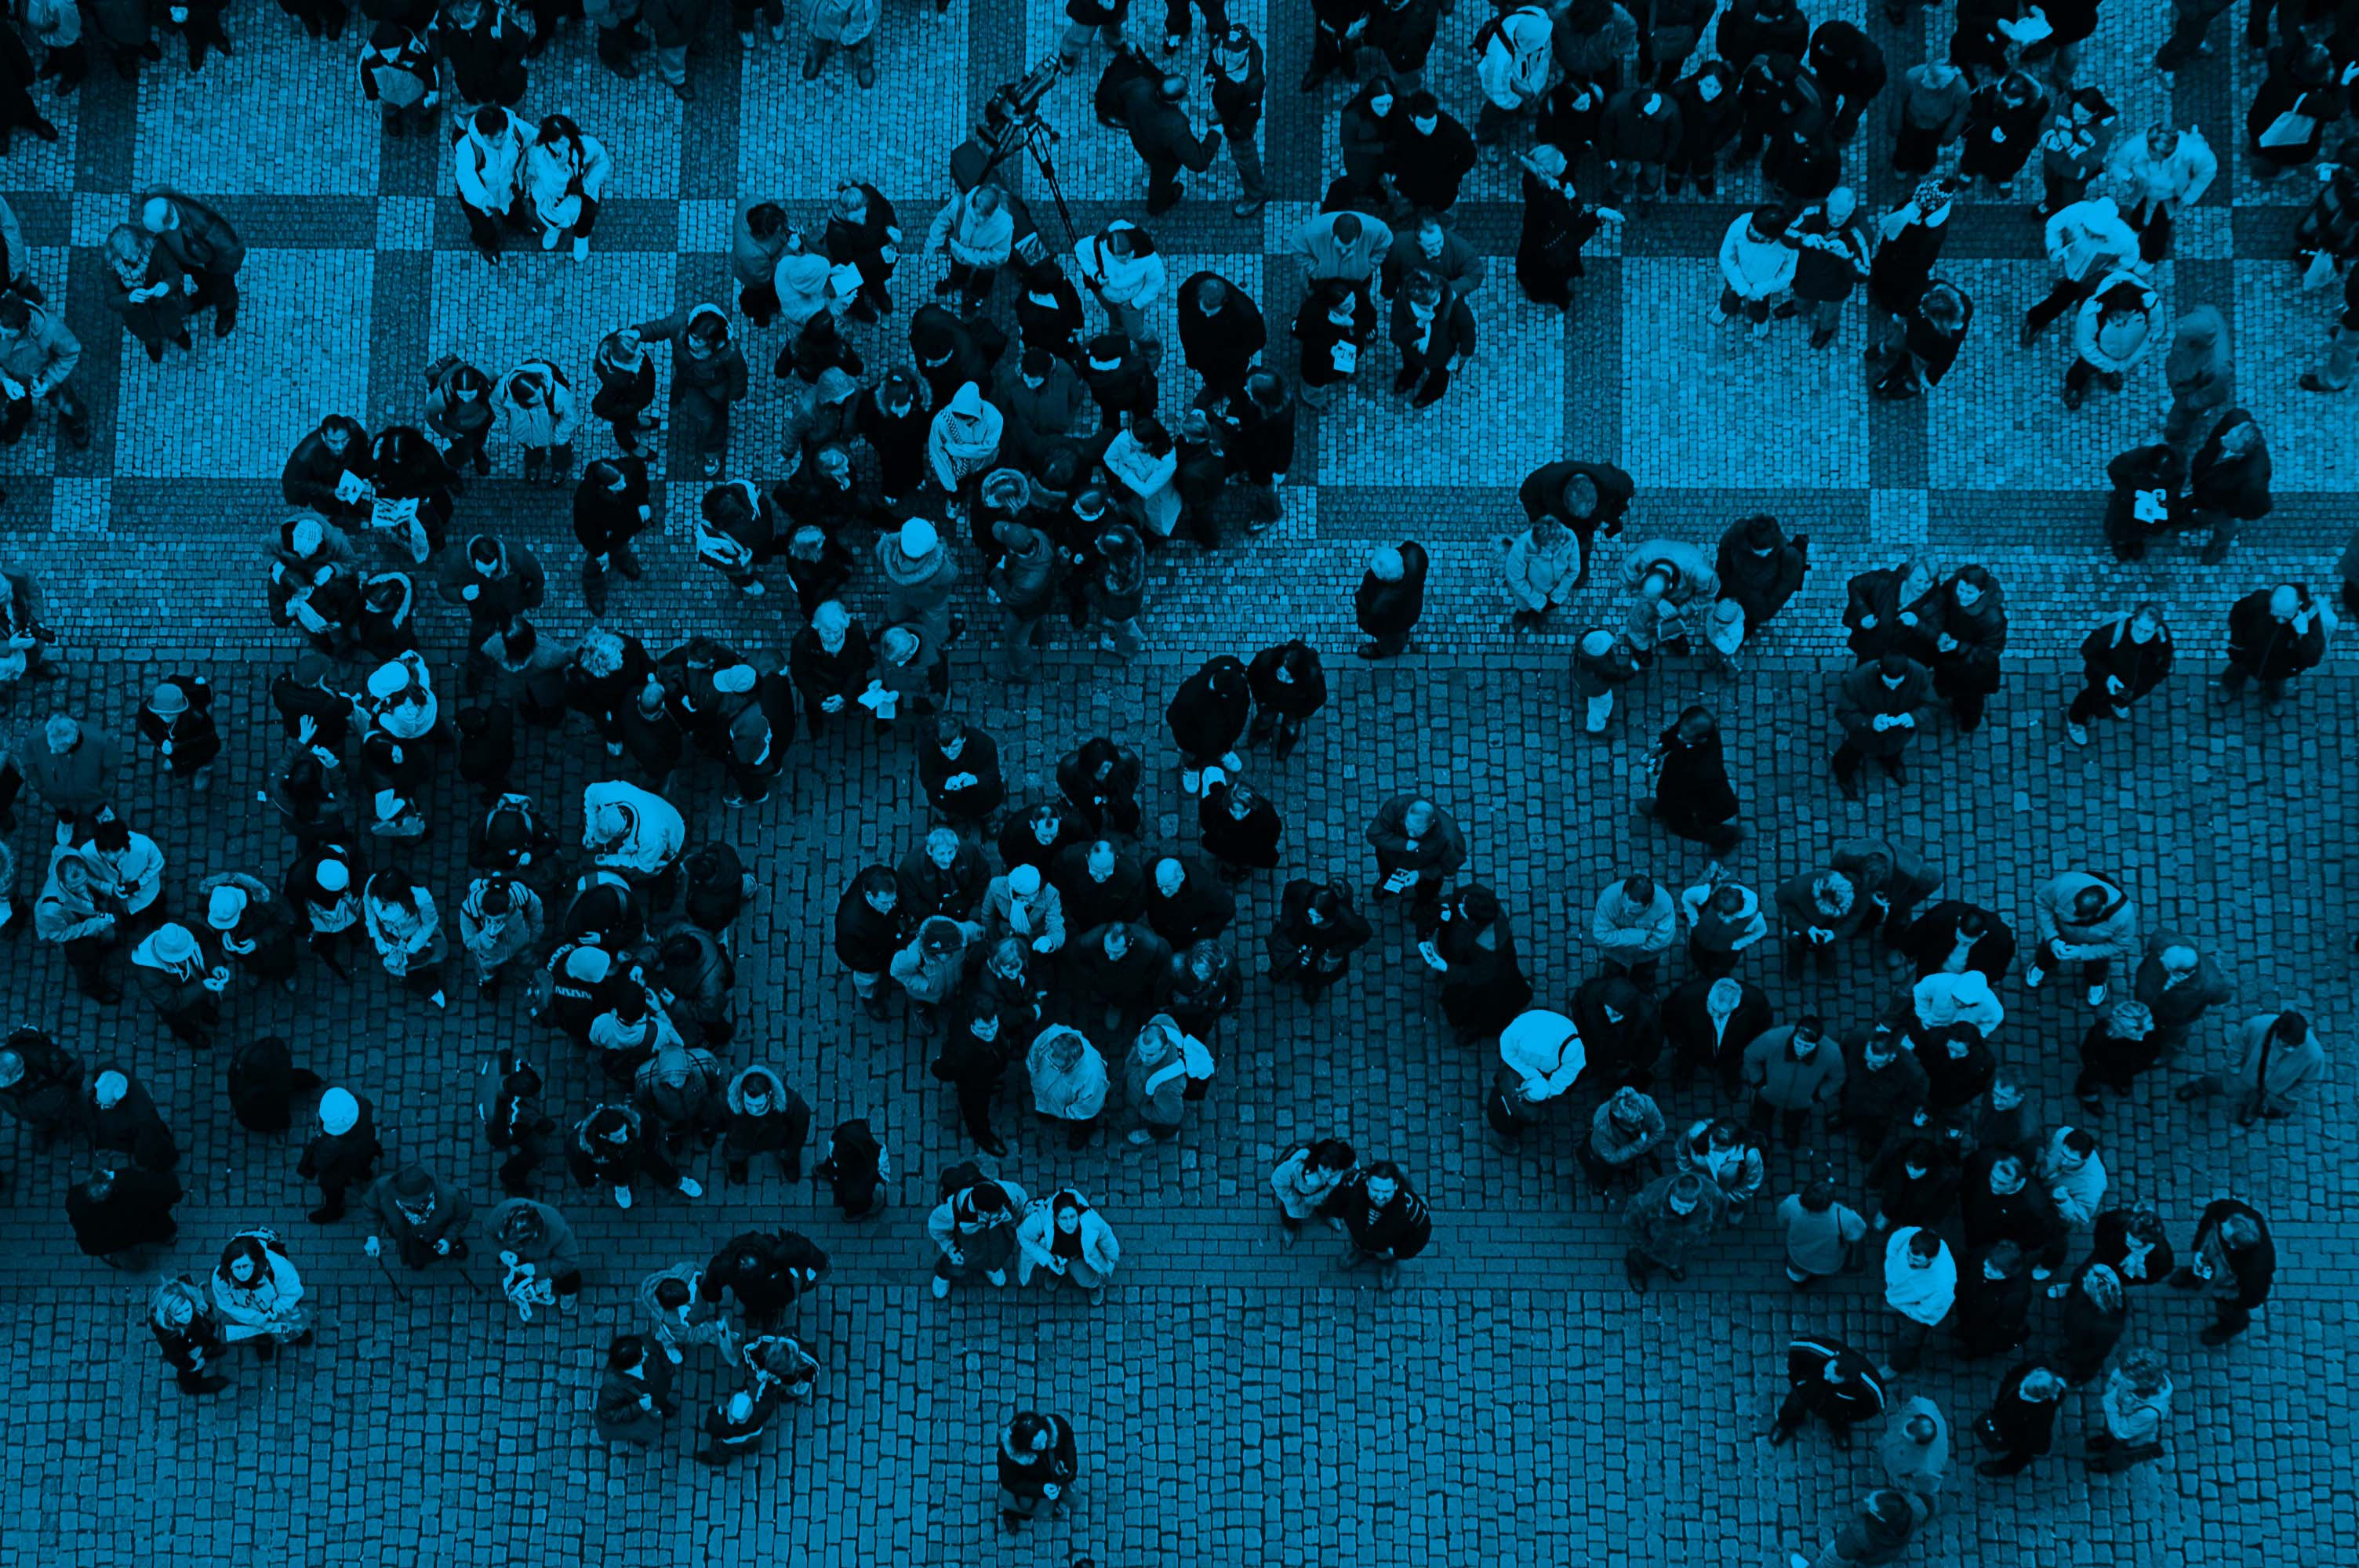 Crowd_Street_Crossing_Blue.jpg